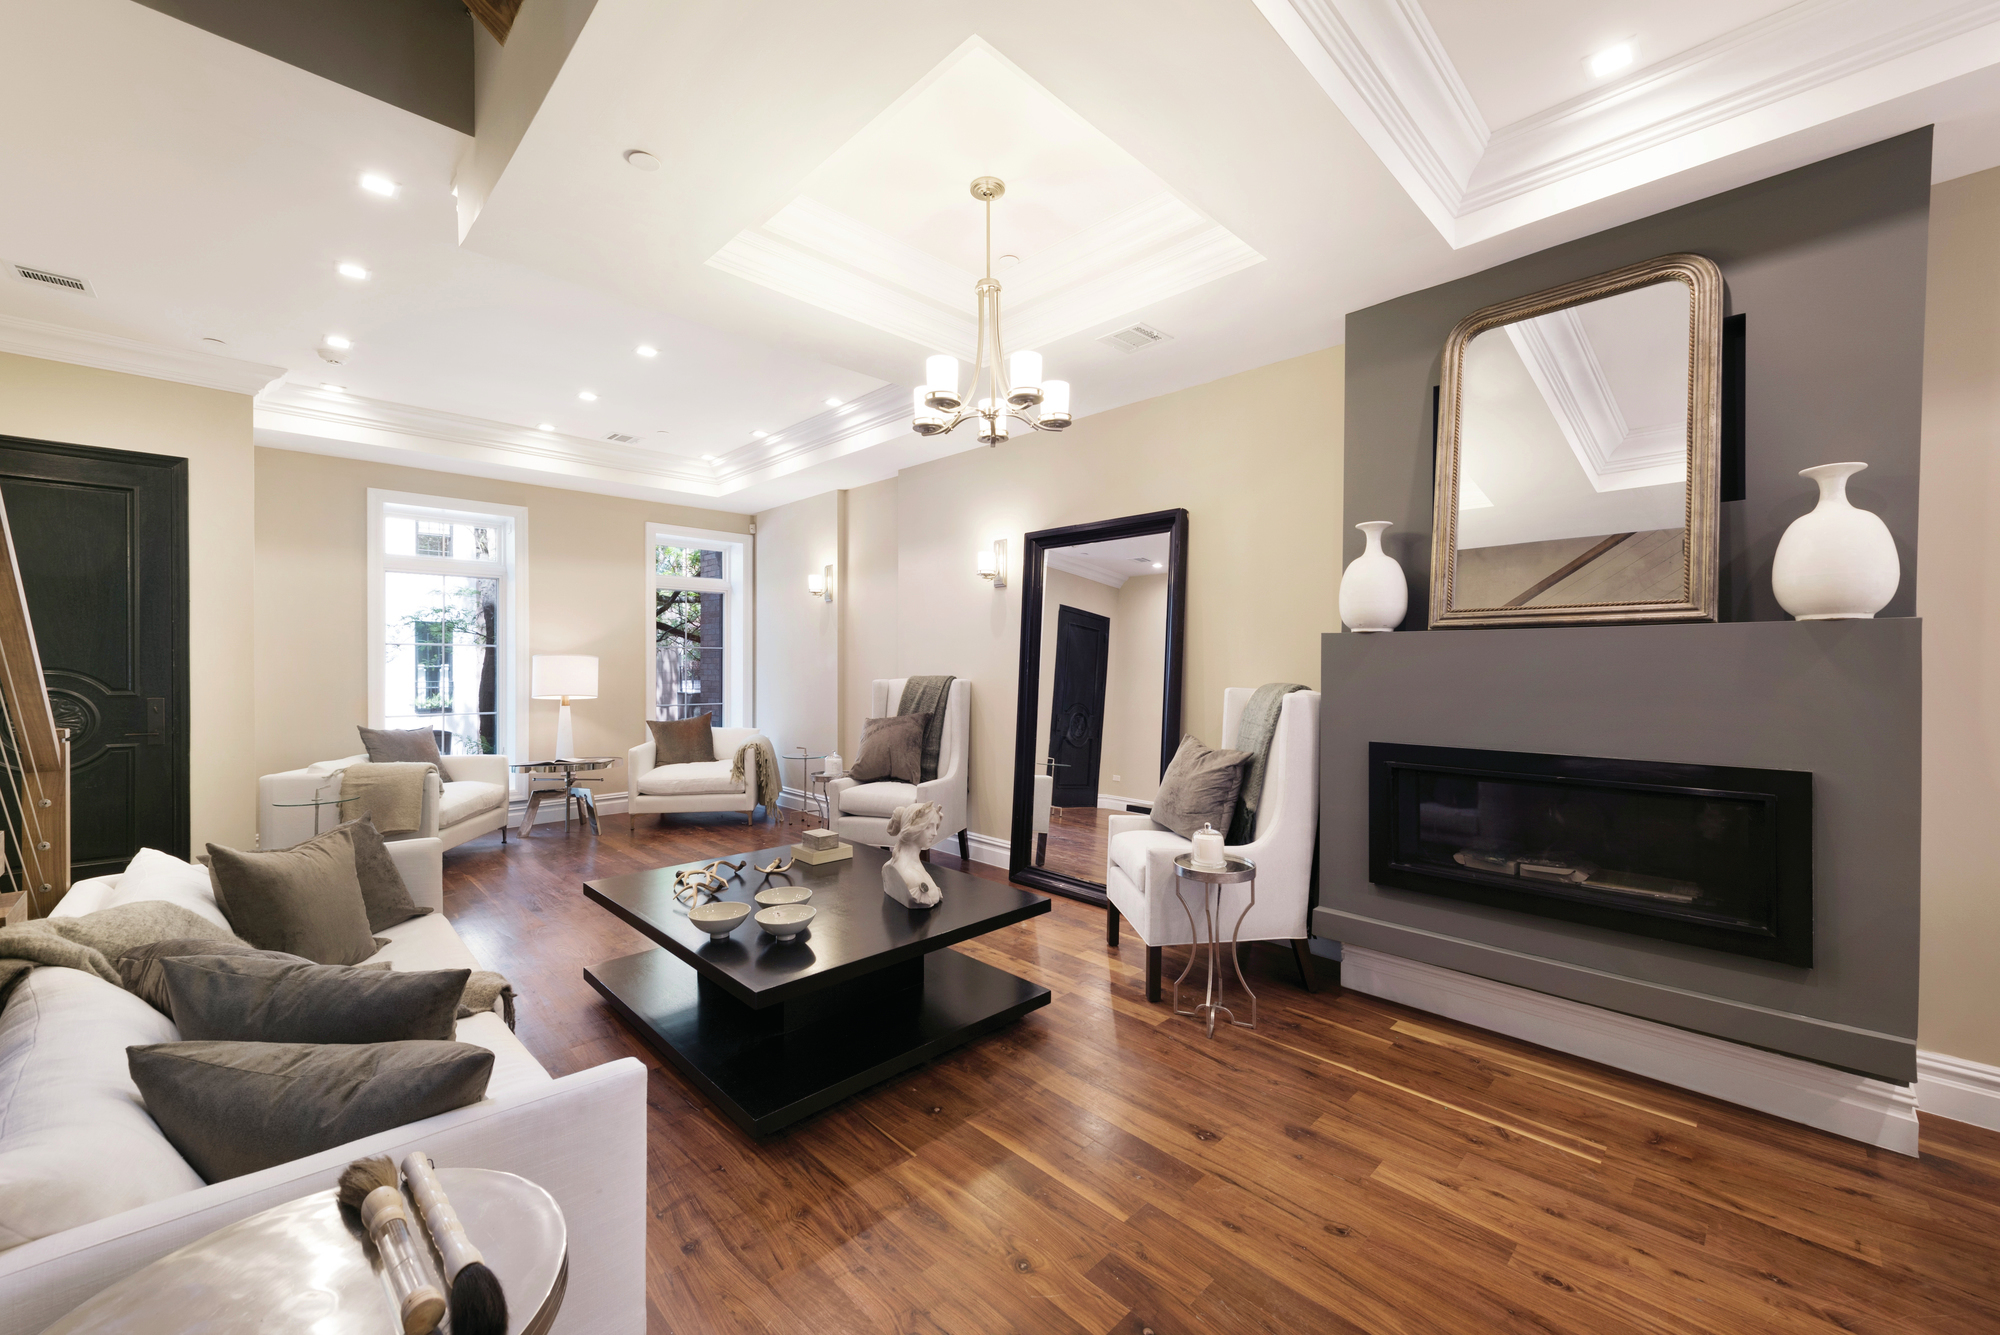 Take A Look Inside A 14 Million Townhouse Builder